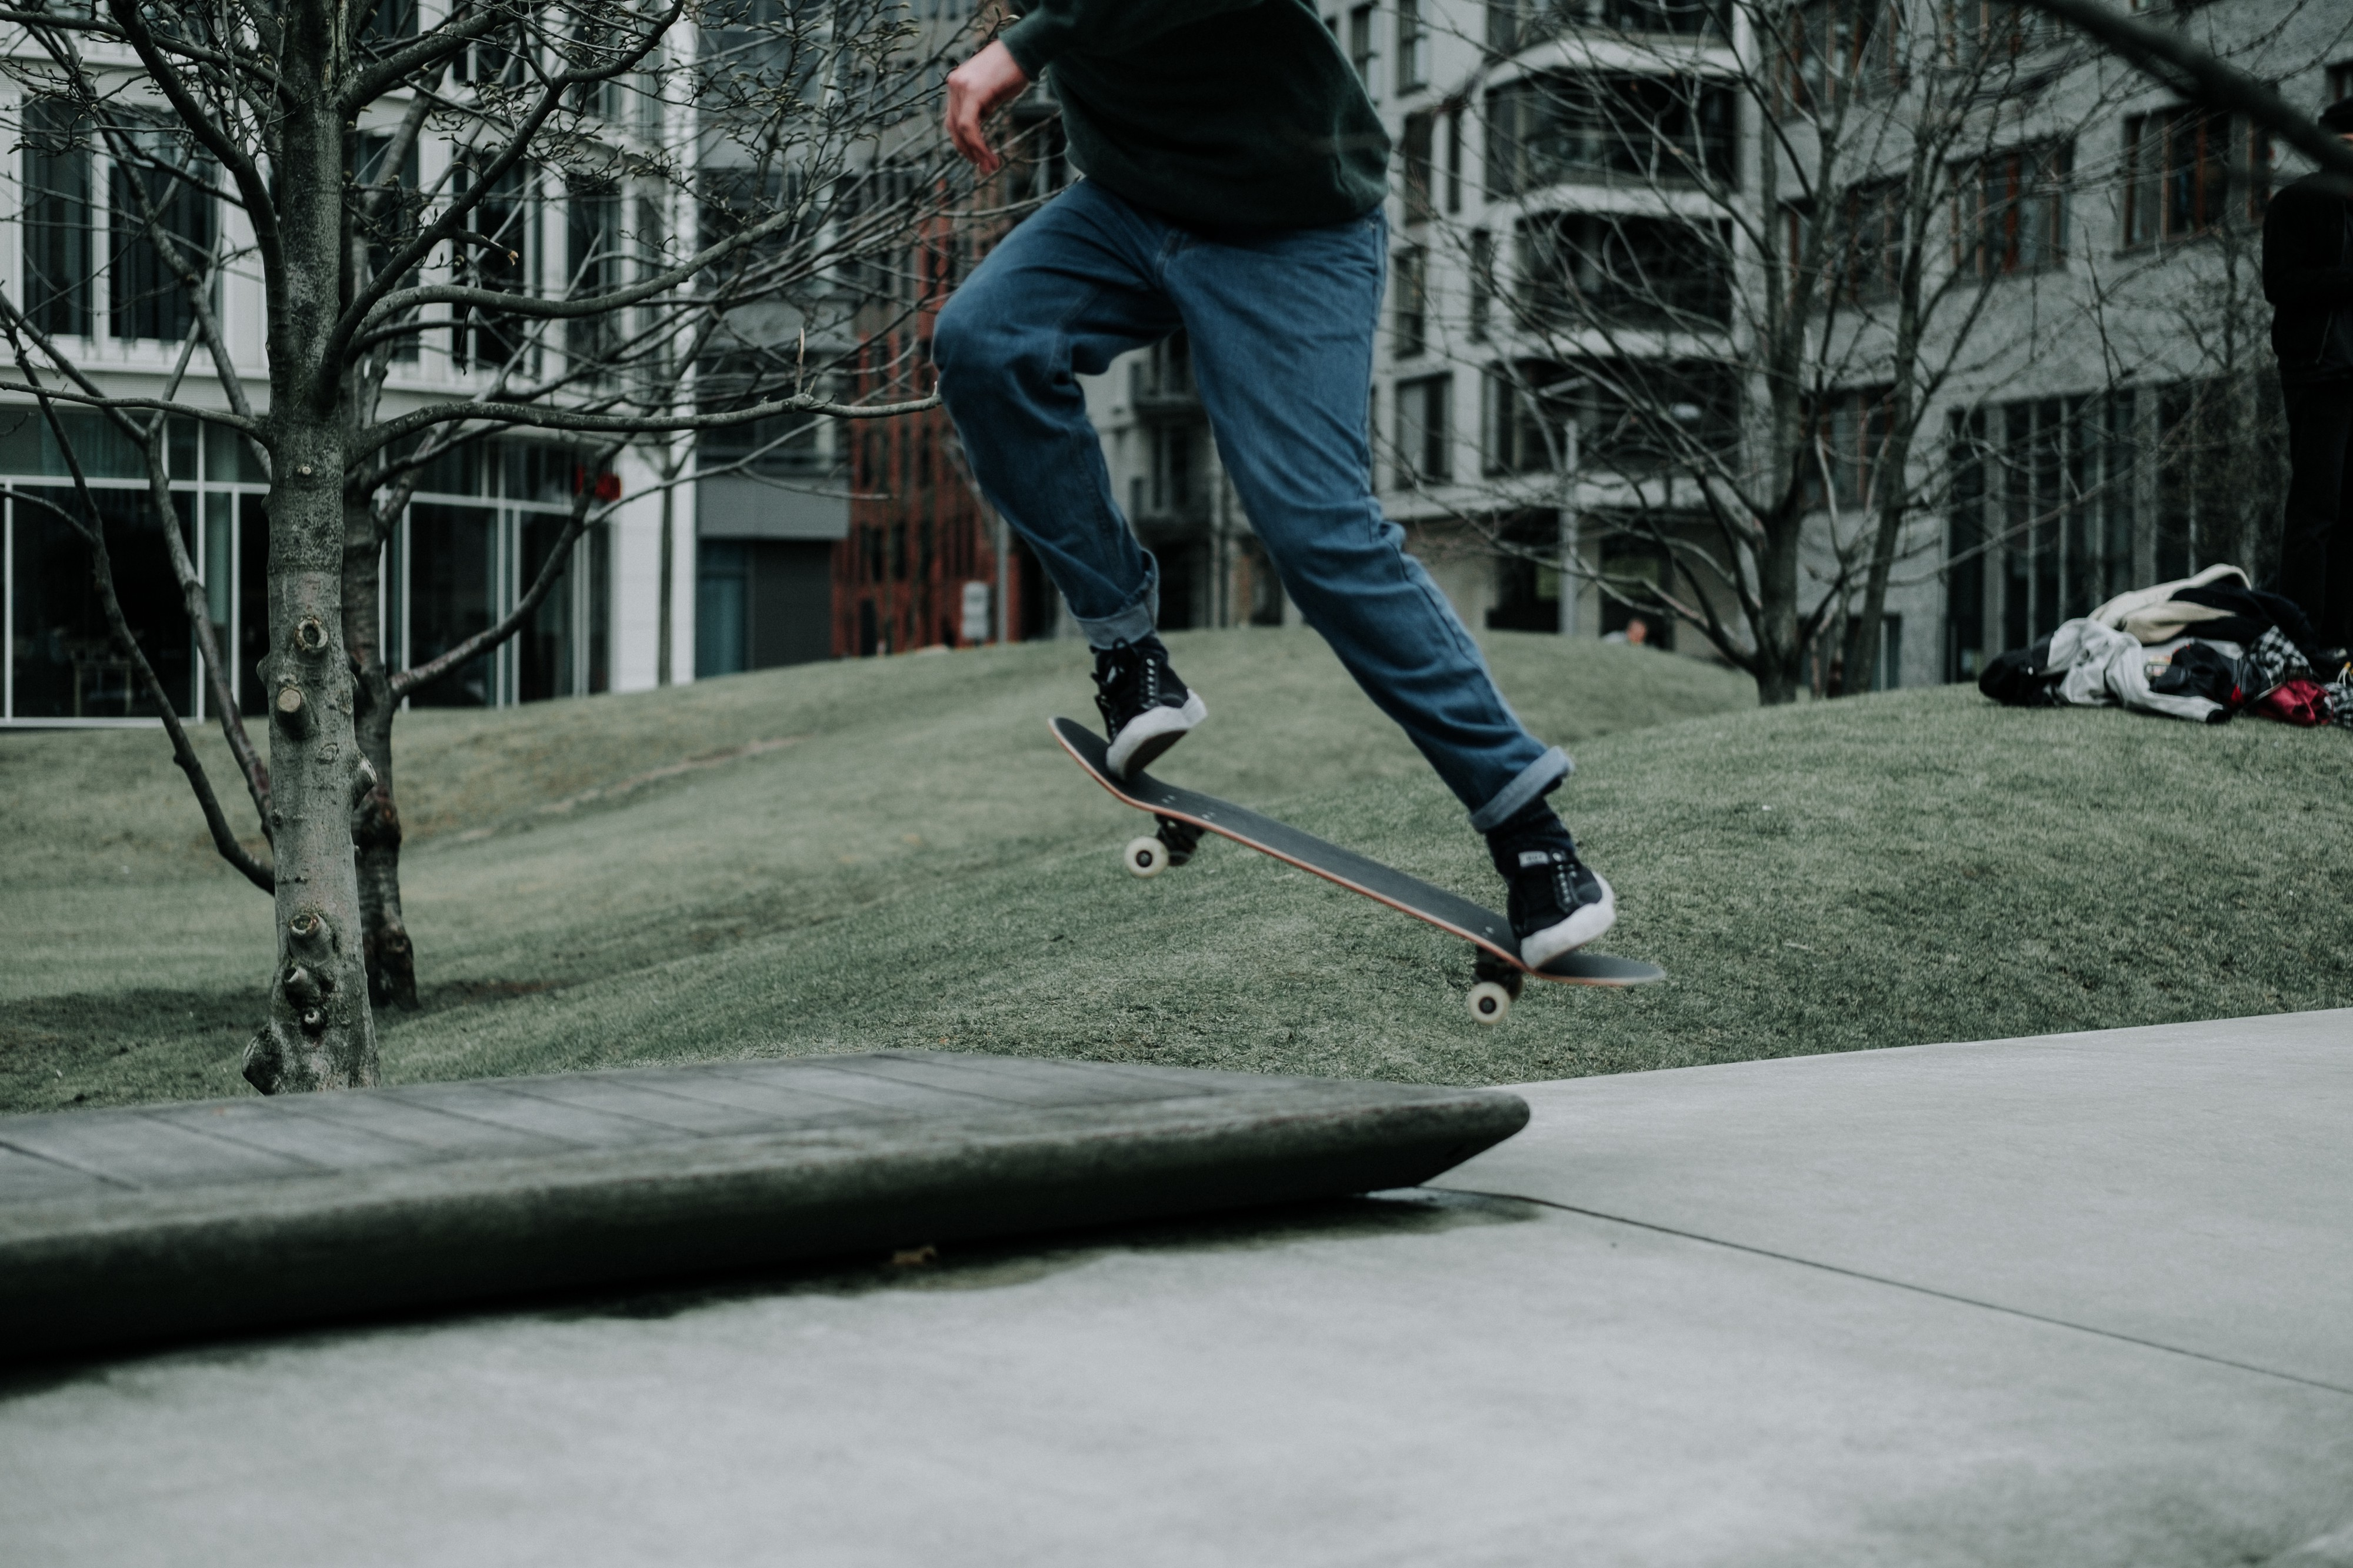 Low view of a teen doing a jump on a skateboard on the sidewalk.